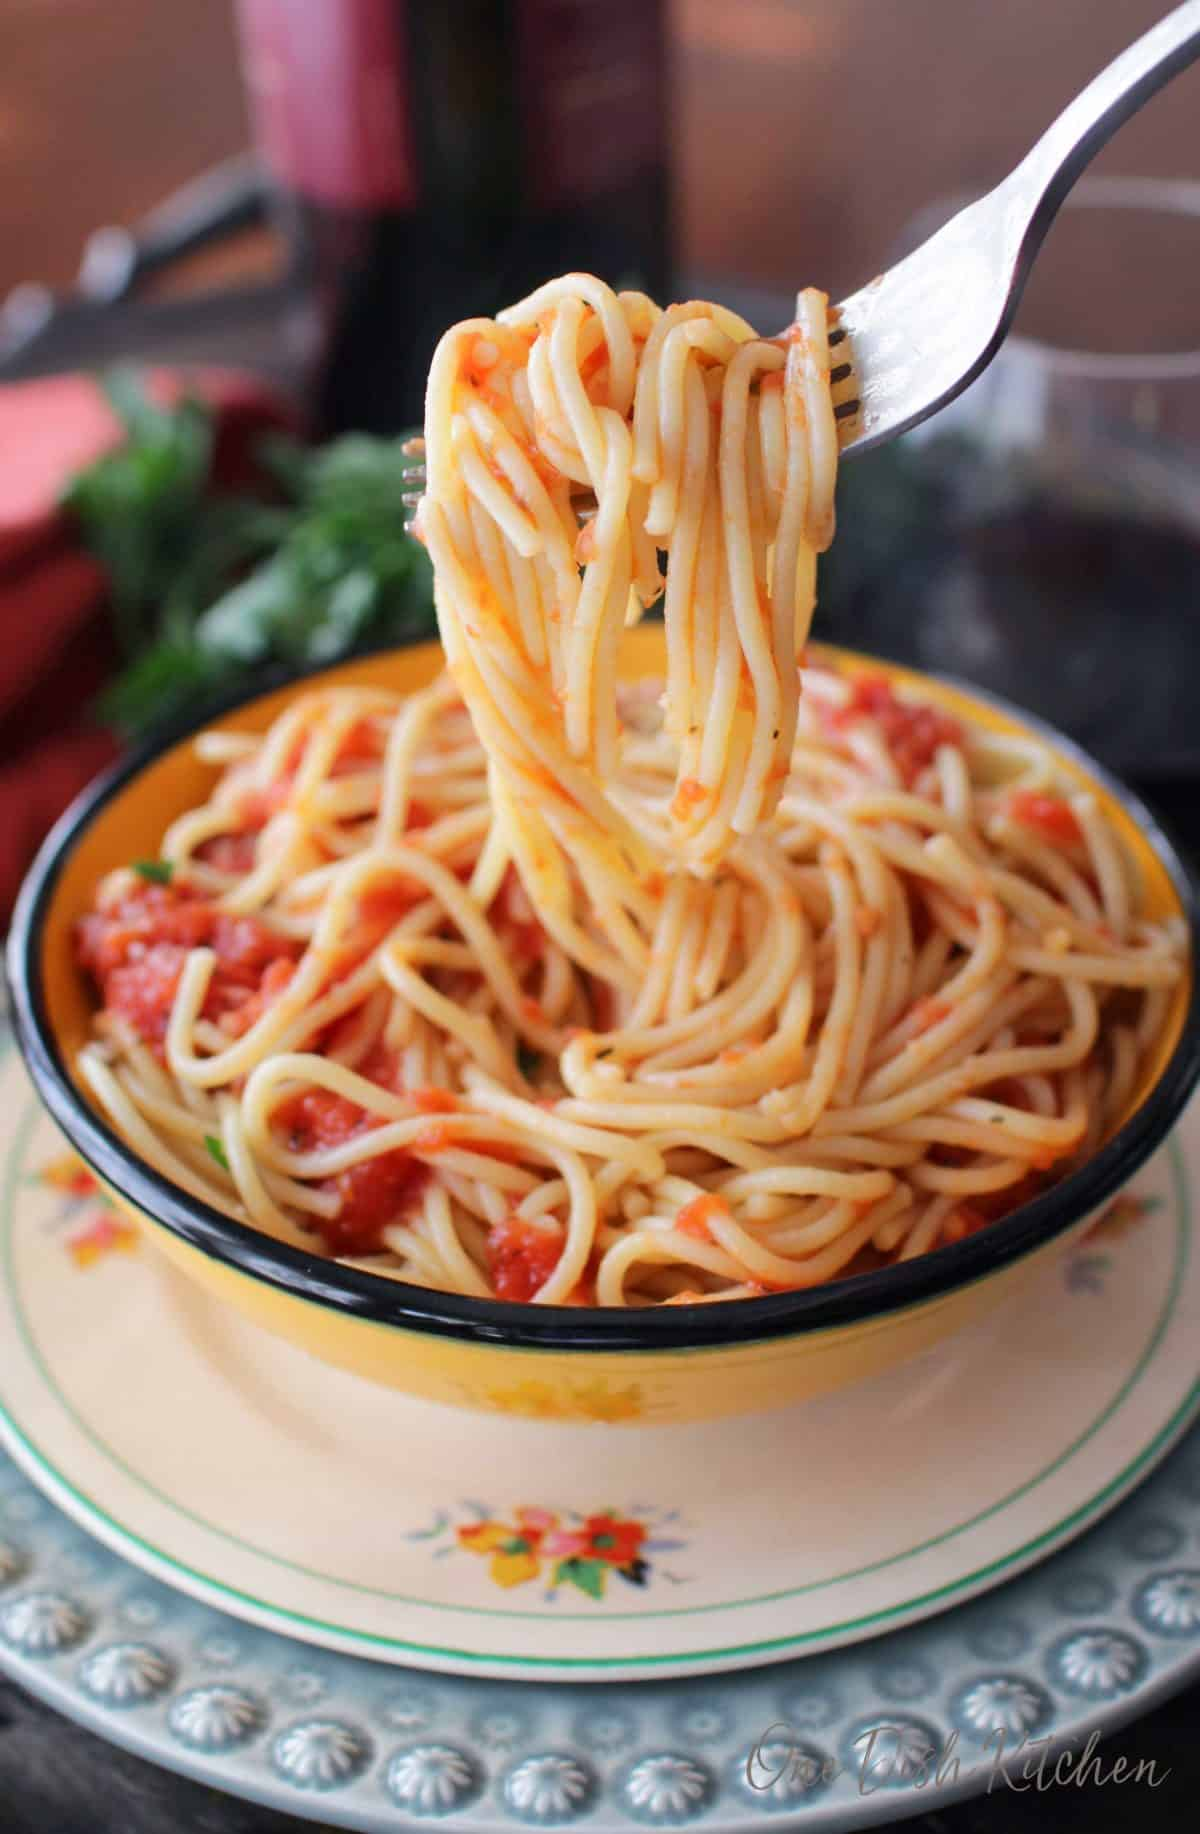 A closeup of spaghetti hanging from a fork